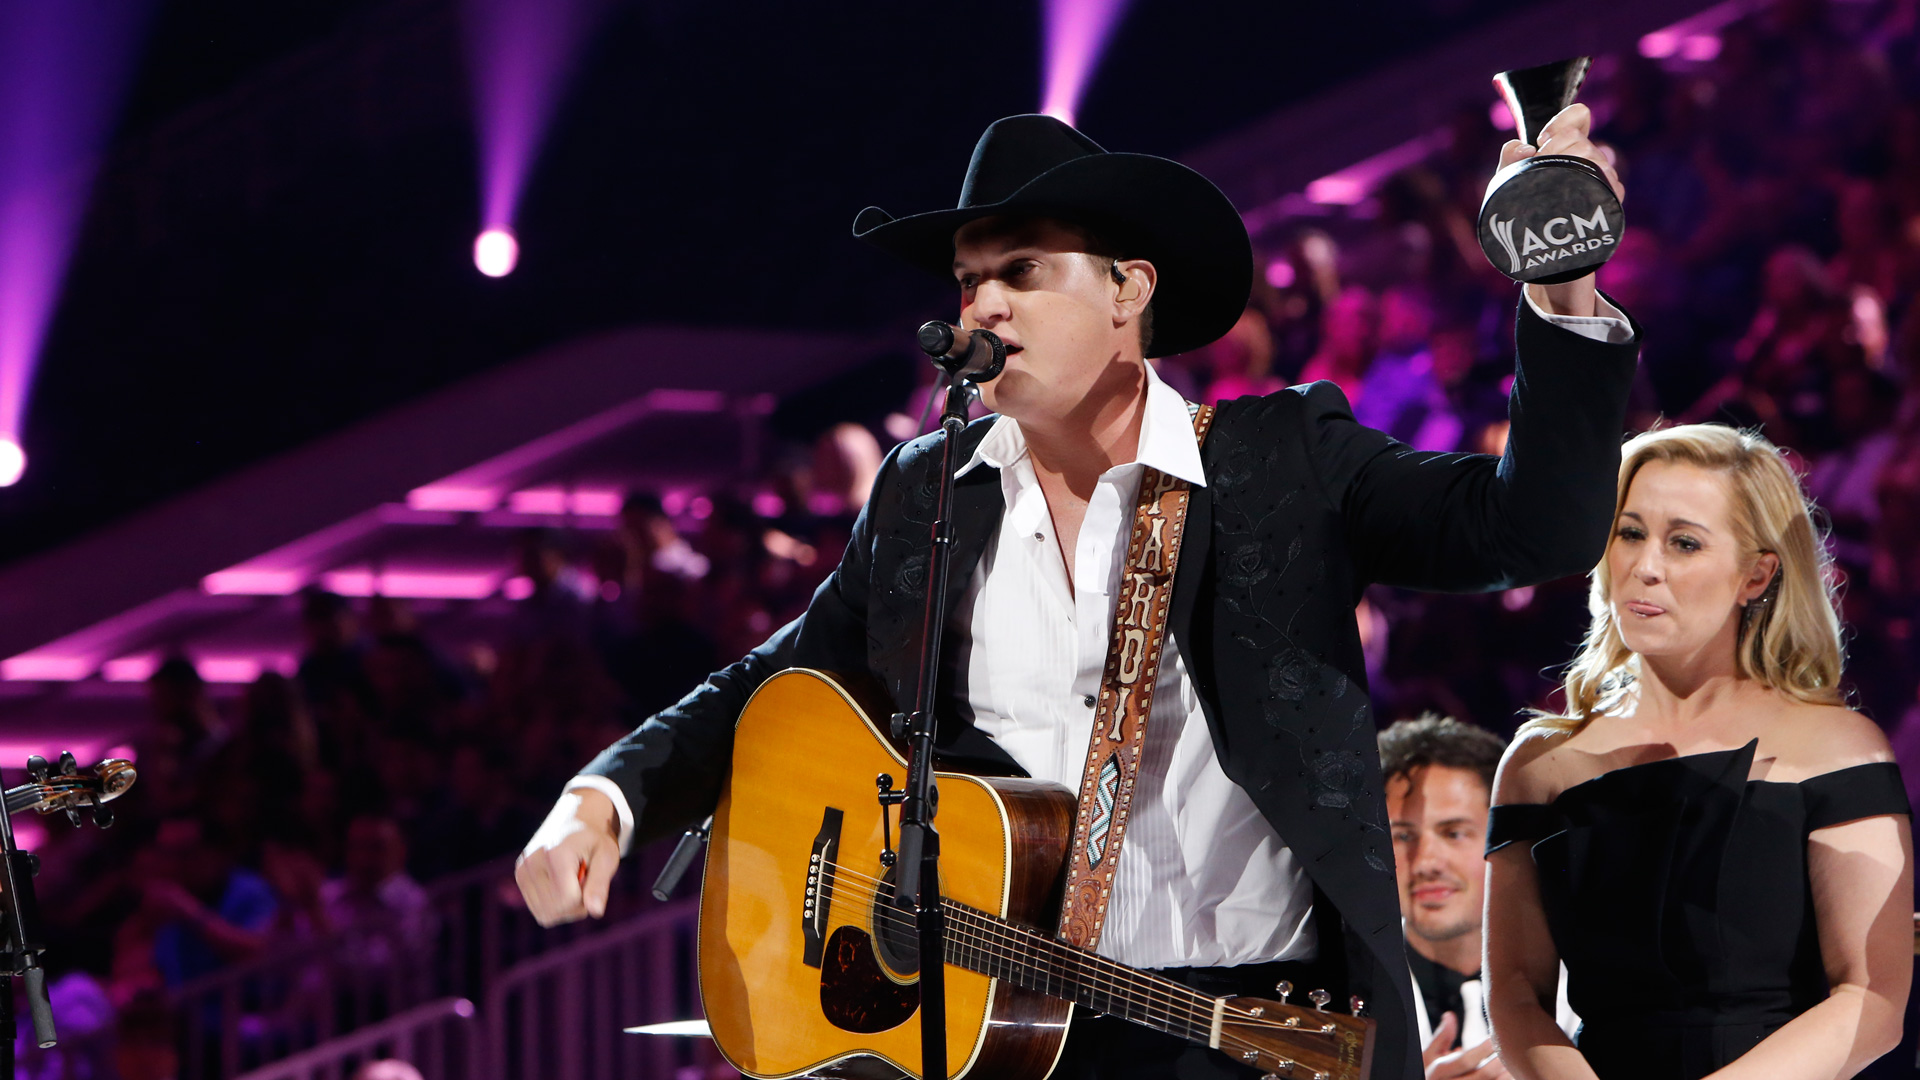 Jon Pardi wins New Male Vocalist Of The Year presented by T-Mobile at the 52nd ACM Awards